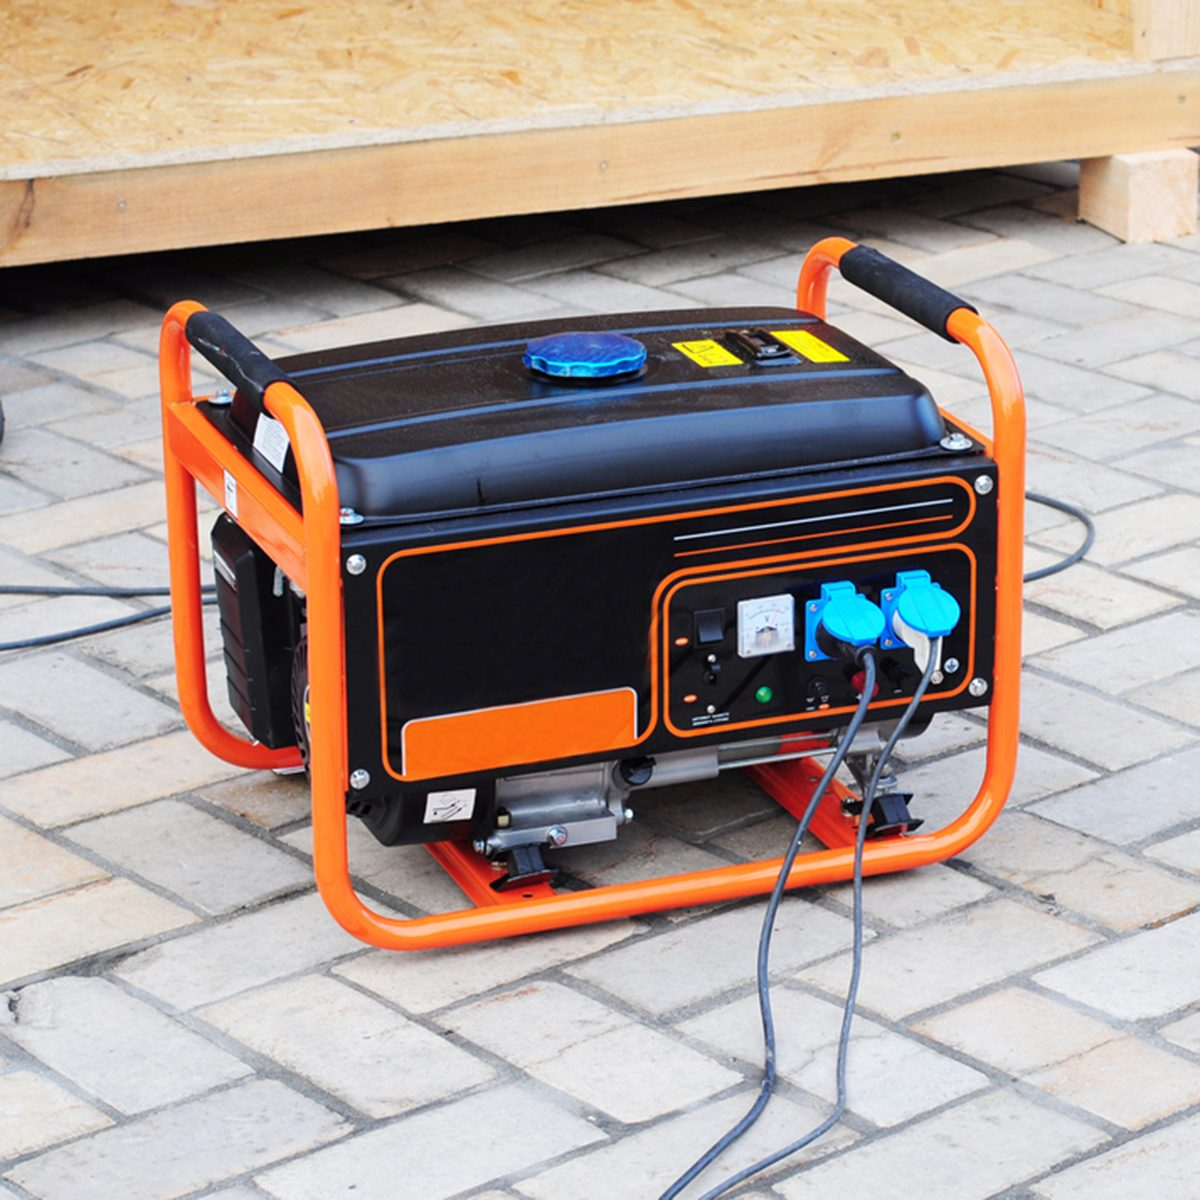 Gasoline Portable Generator on the House Construction Site.